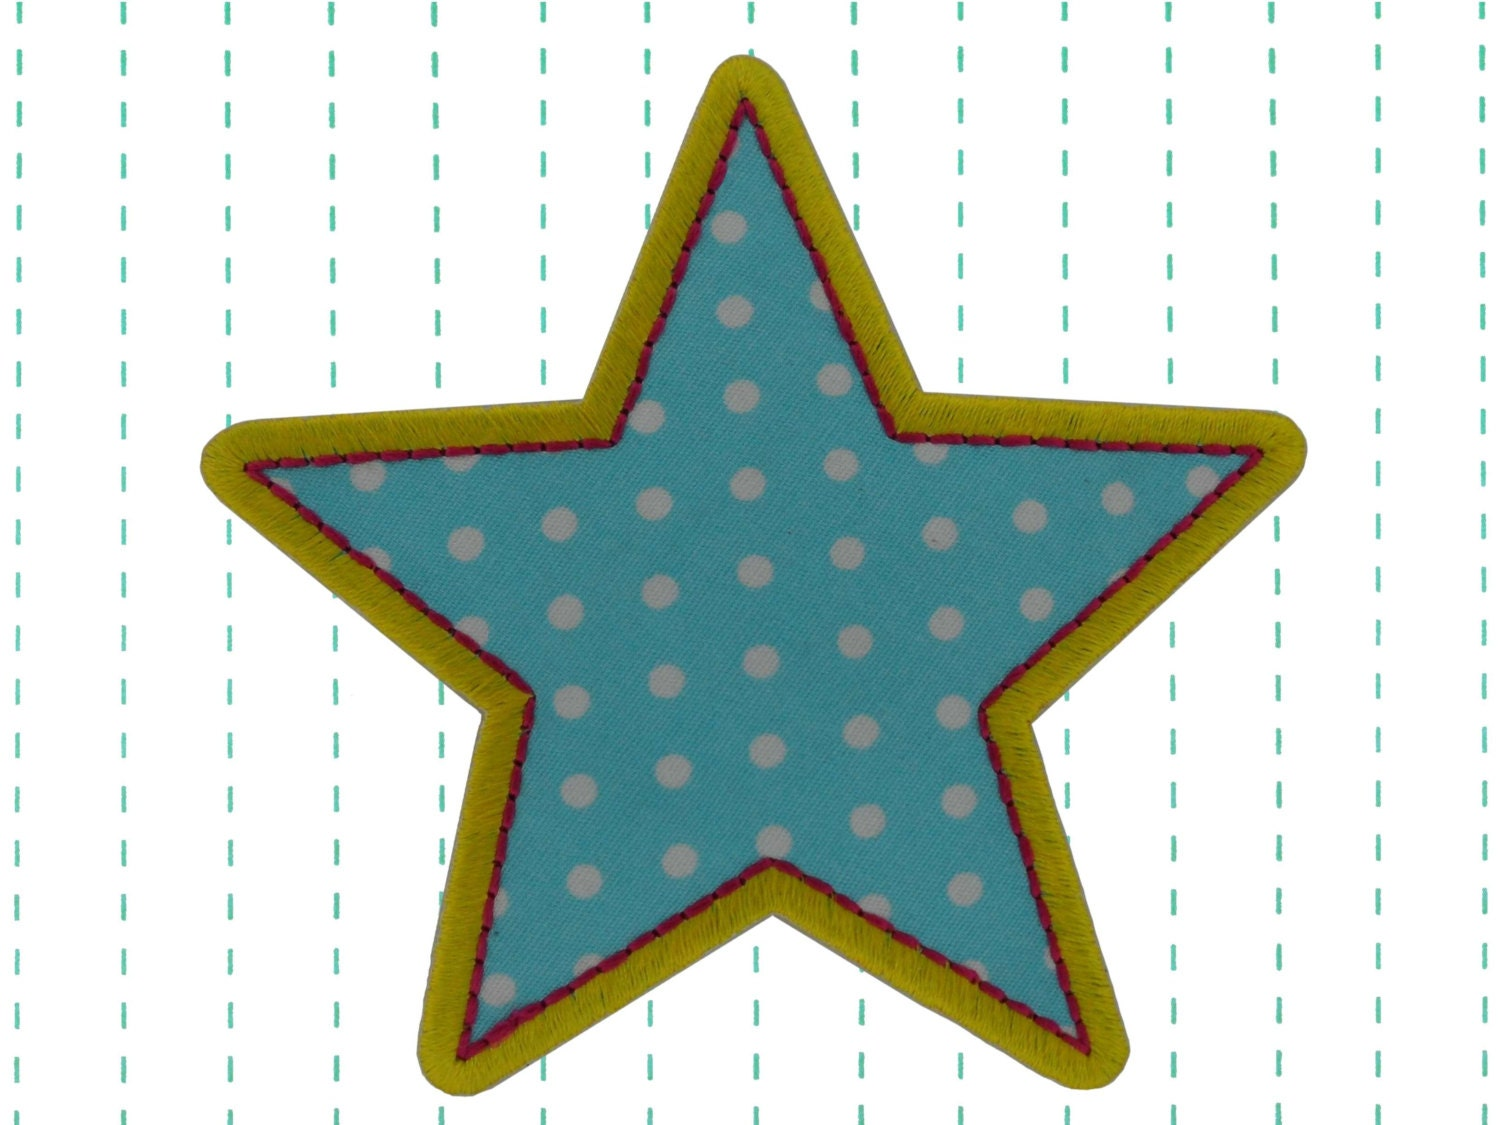 Star Iron On Applique Patch